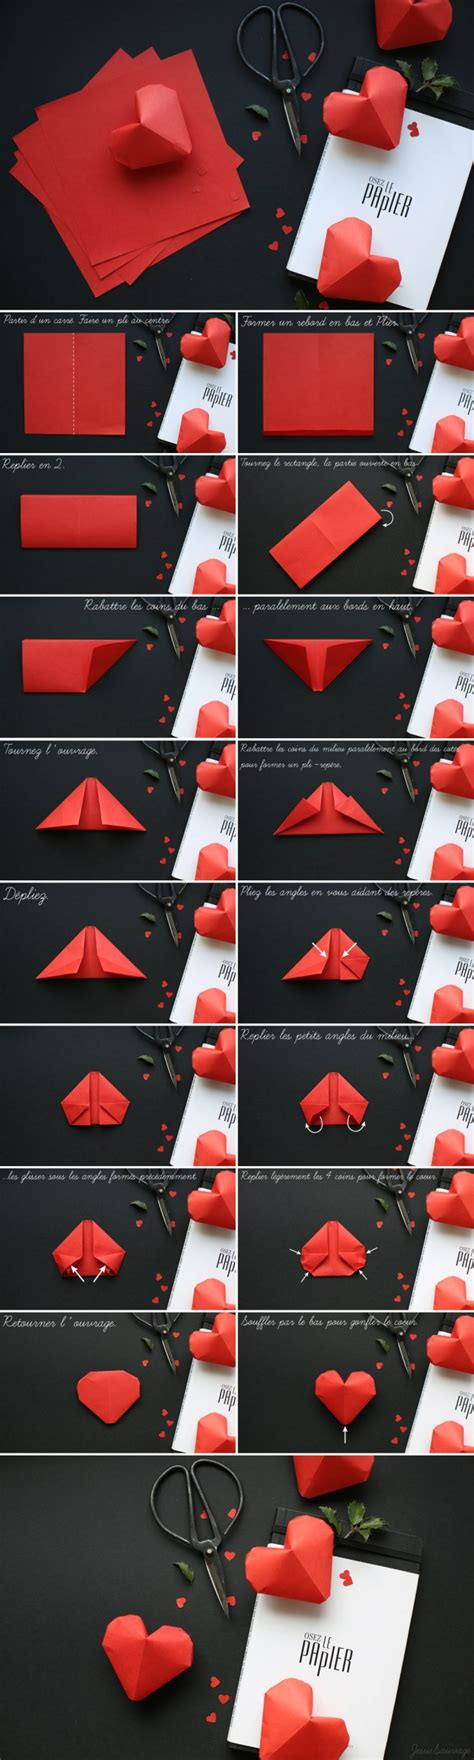 3d hearts origami how to fold lovely origami hearts how to